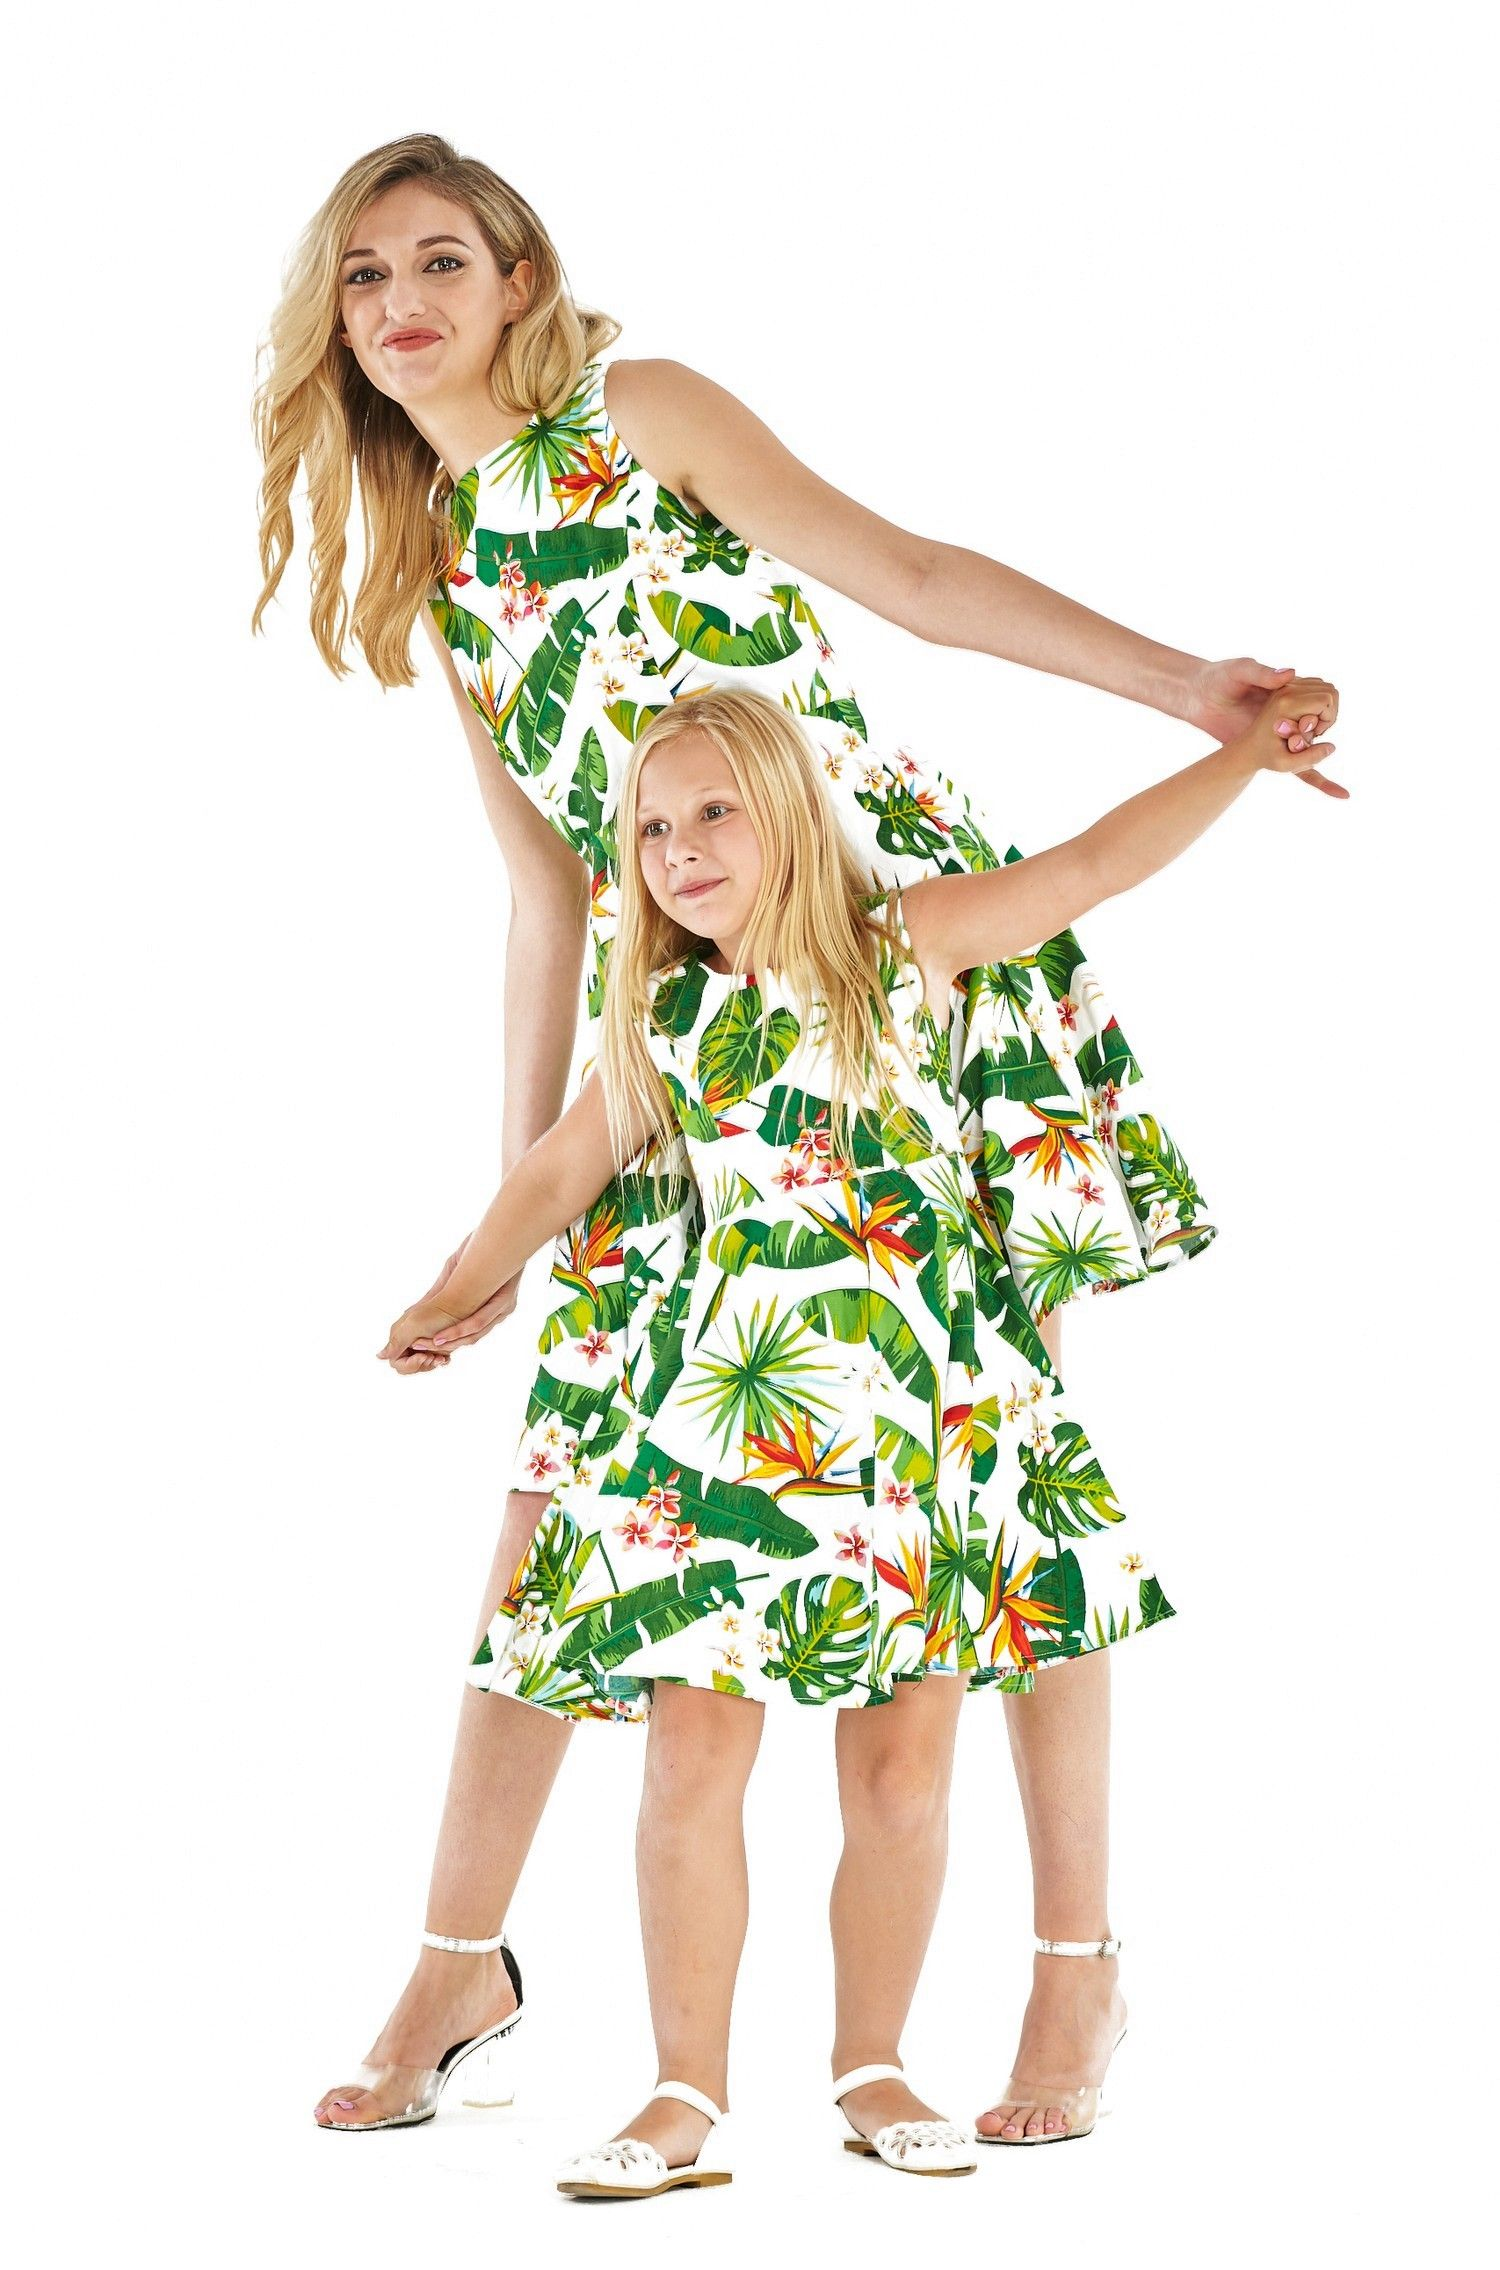 fee2a62eaf57 Matching Mother Daughter Lady and Girl Vintage Fit and Flare Dress in Bird  of Paradise, White